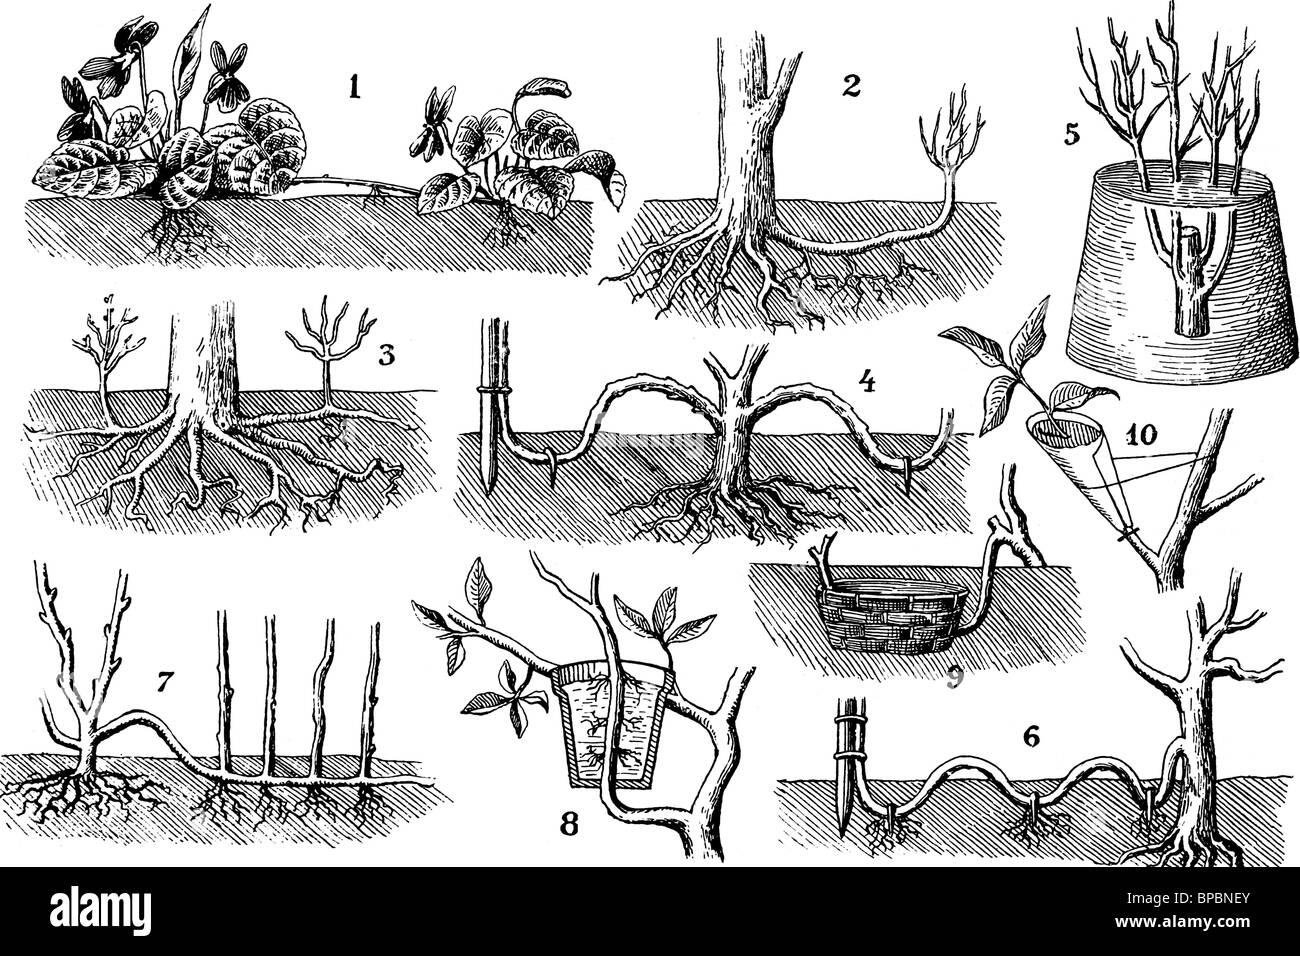 Plants reproduction without seeds. Antique illustration. 1900. Stock Photo